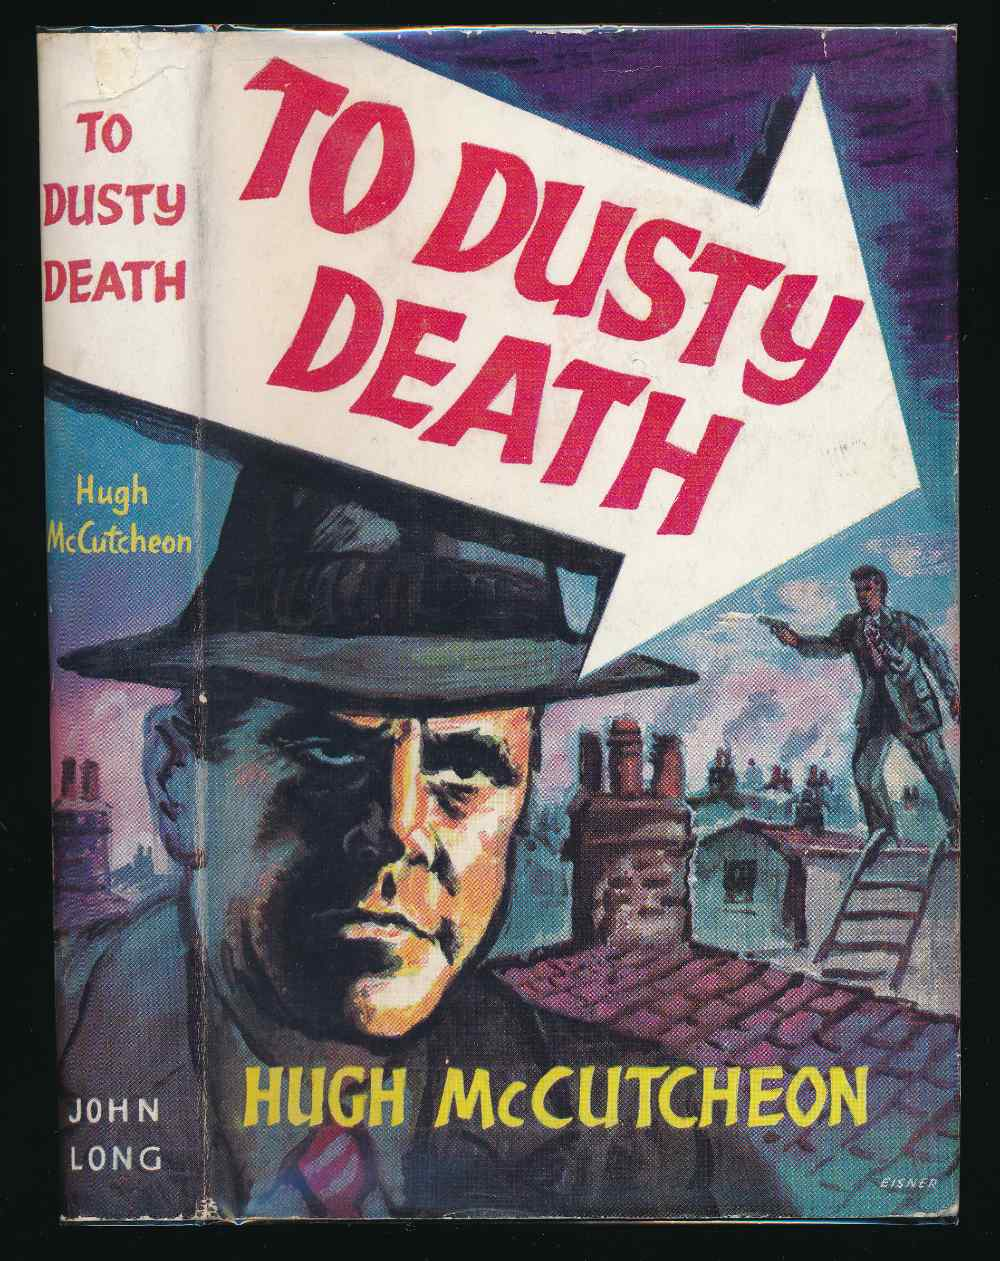 To dusty death